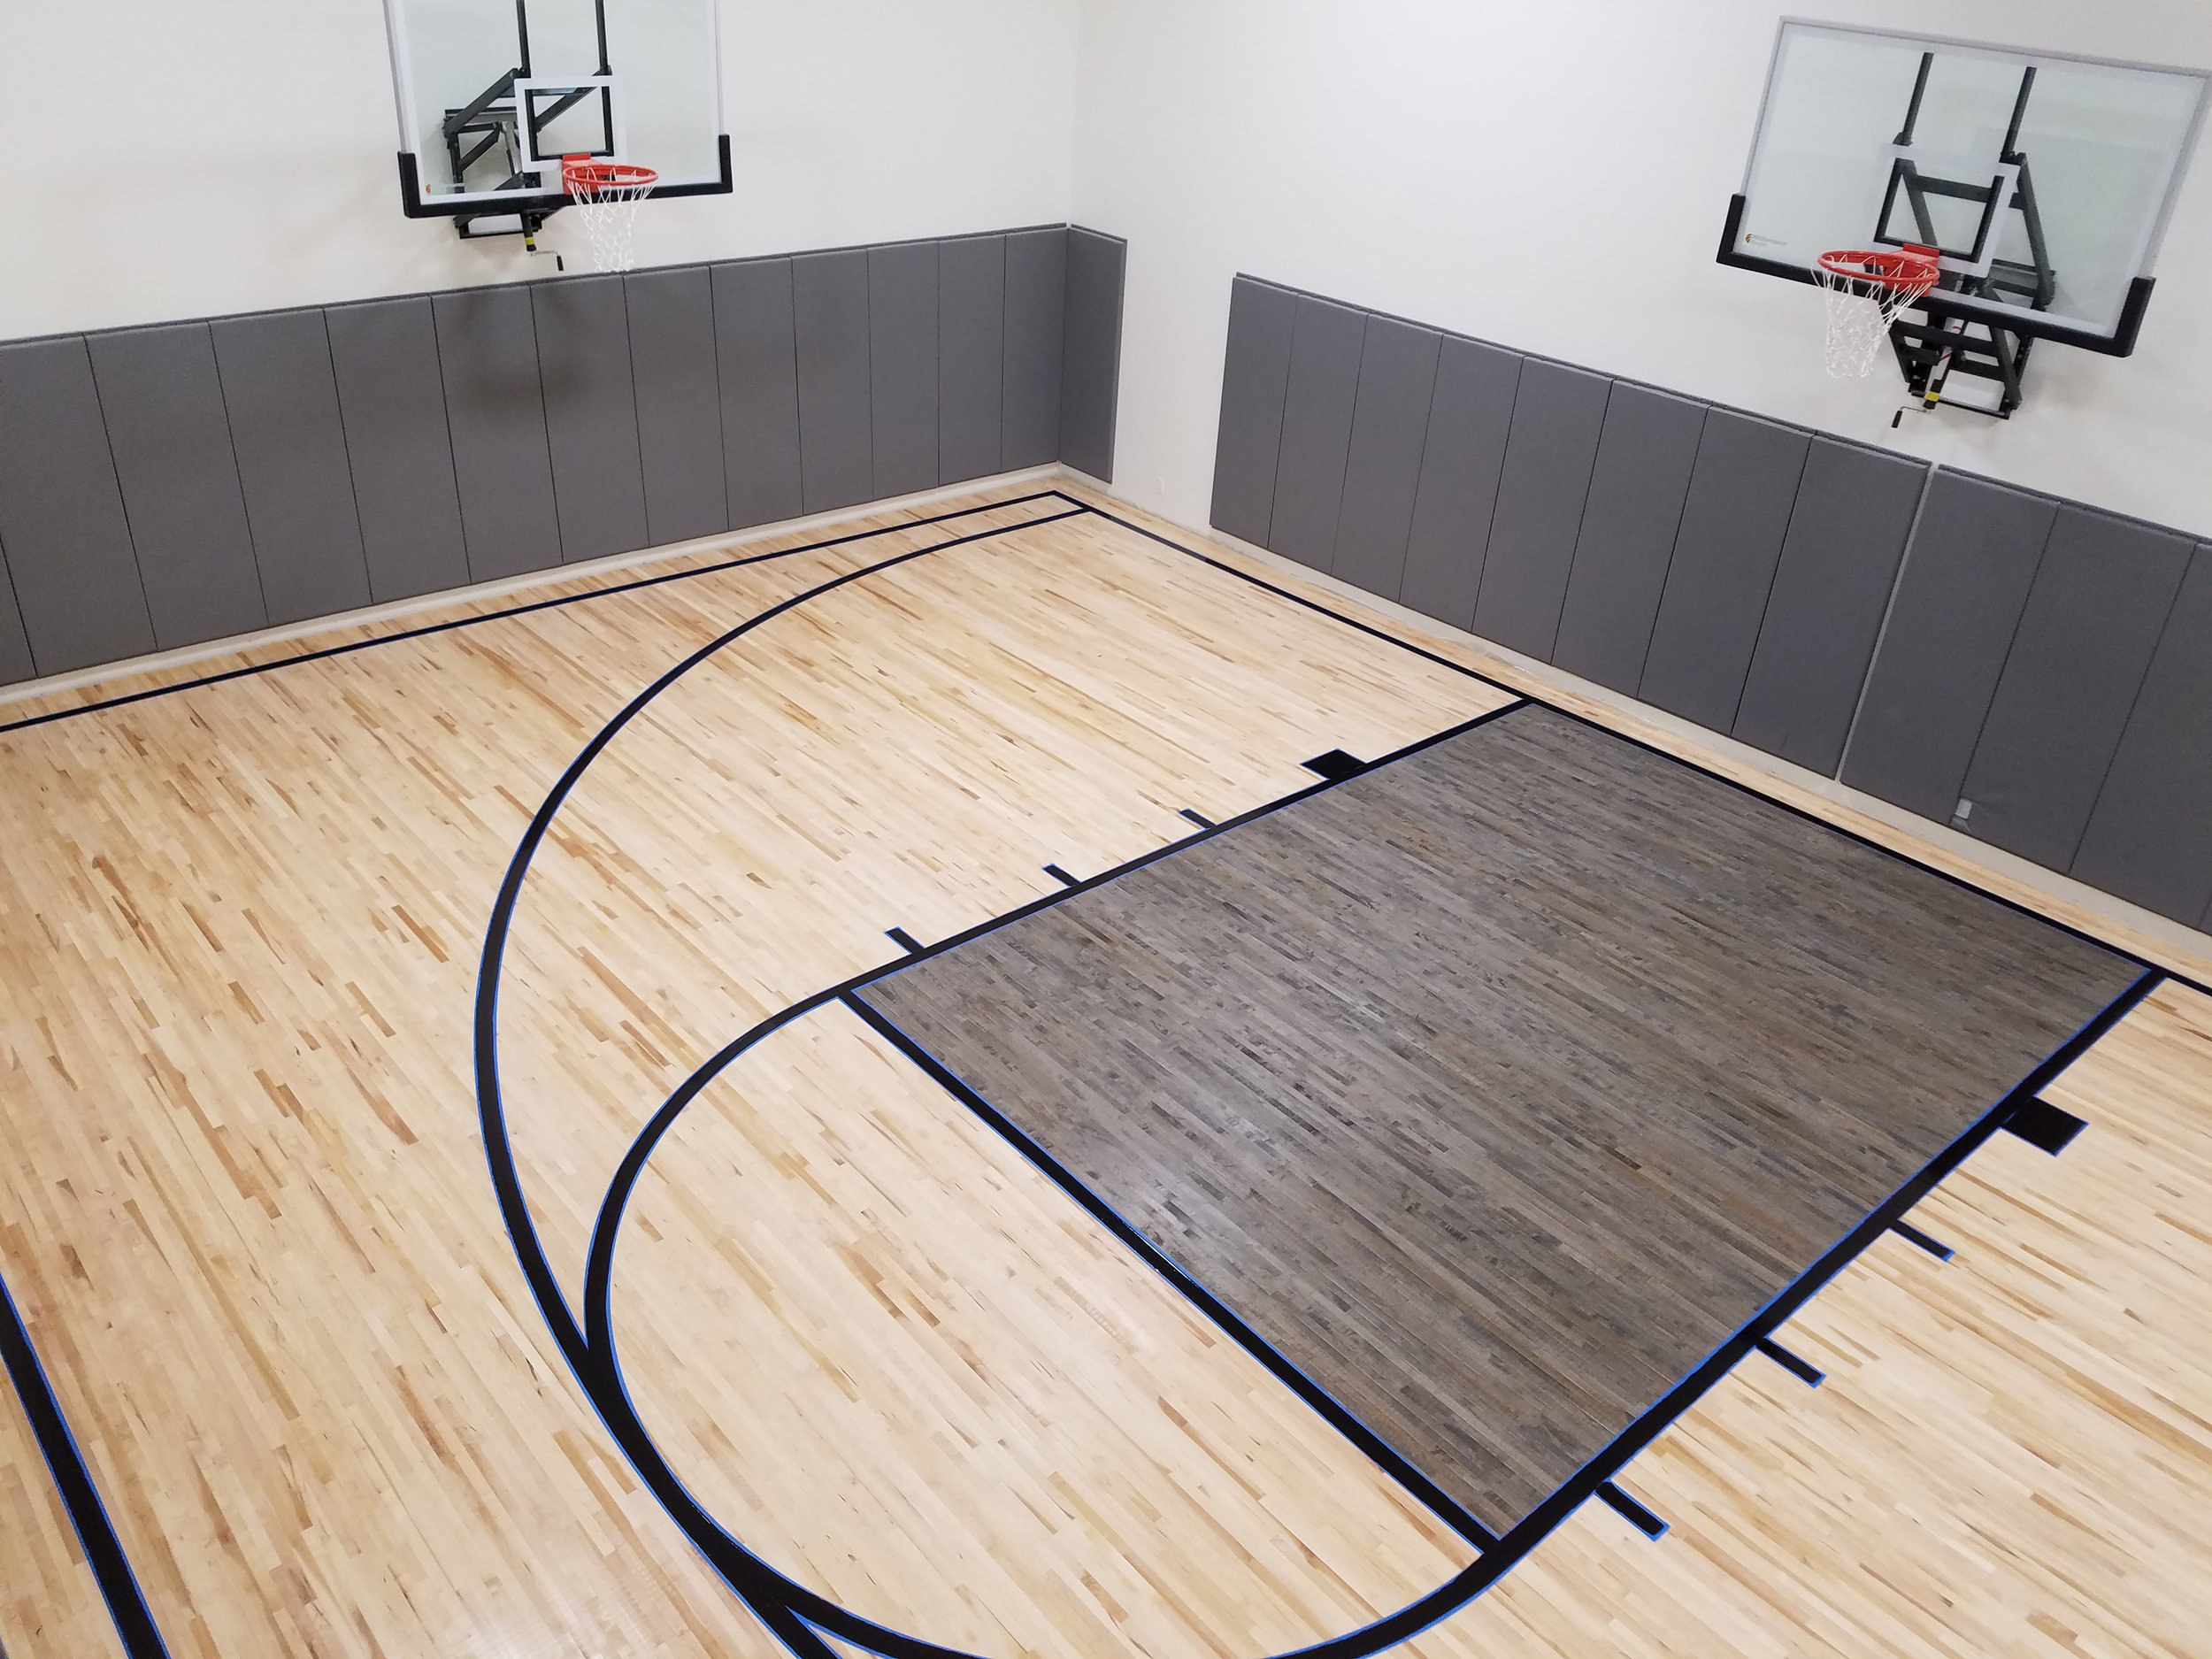 Residential gym Installations - 2nd or better Maple flooring with charcoal gray stain